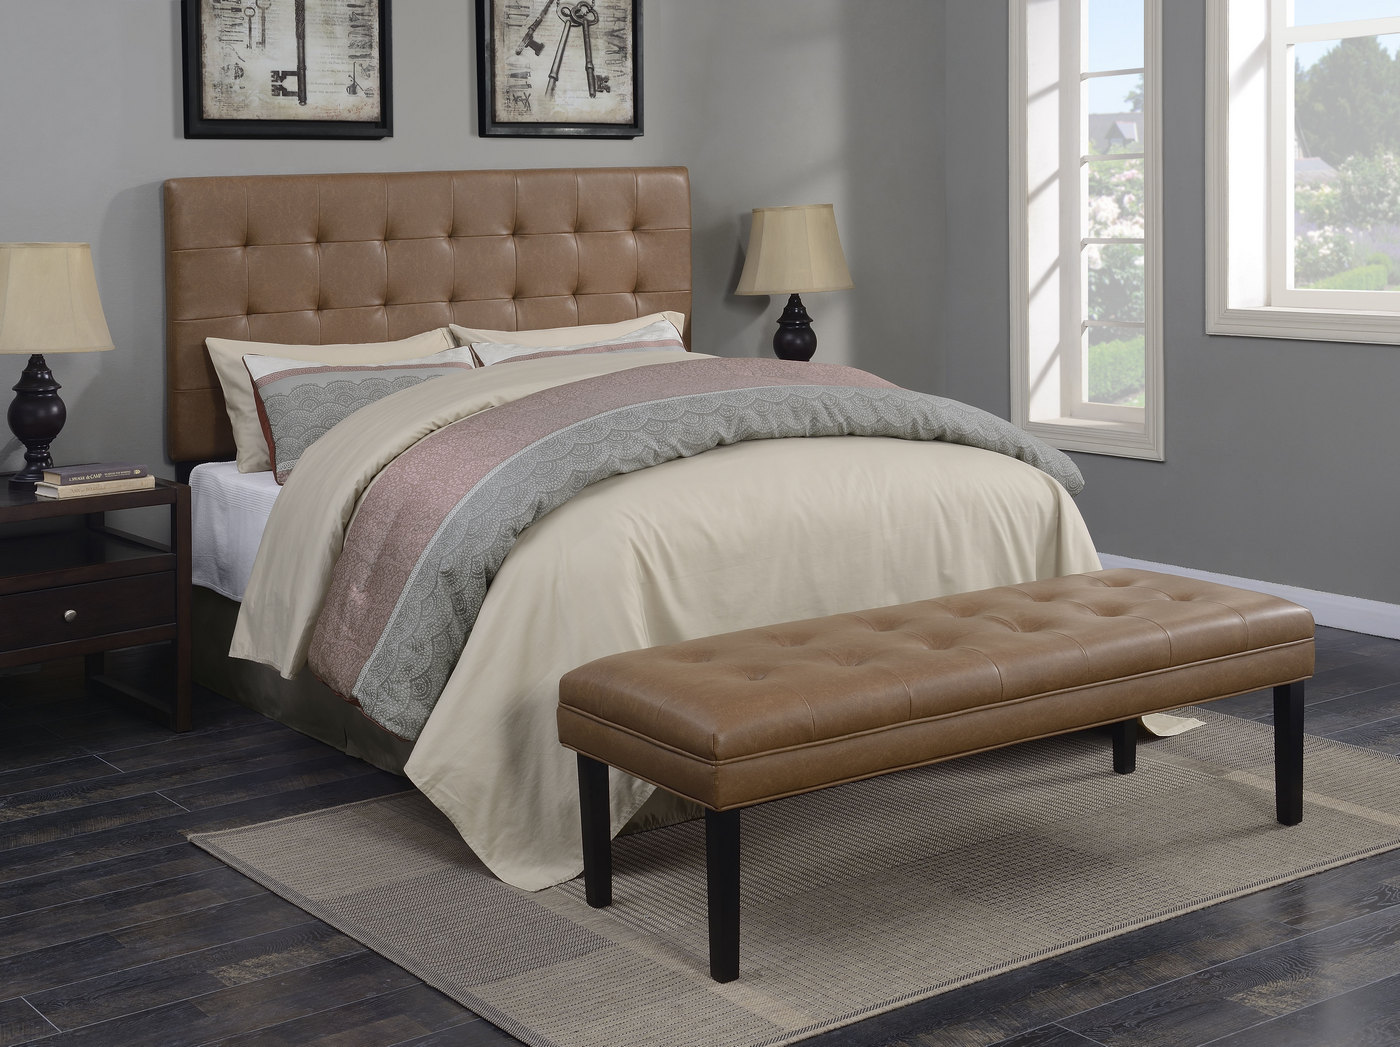 Wilburton Faux Leather Biscuit Tufted Full/Queen Headboard ... on Cognac Leather Headboard  id=58341